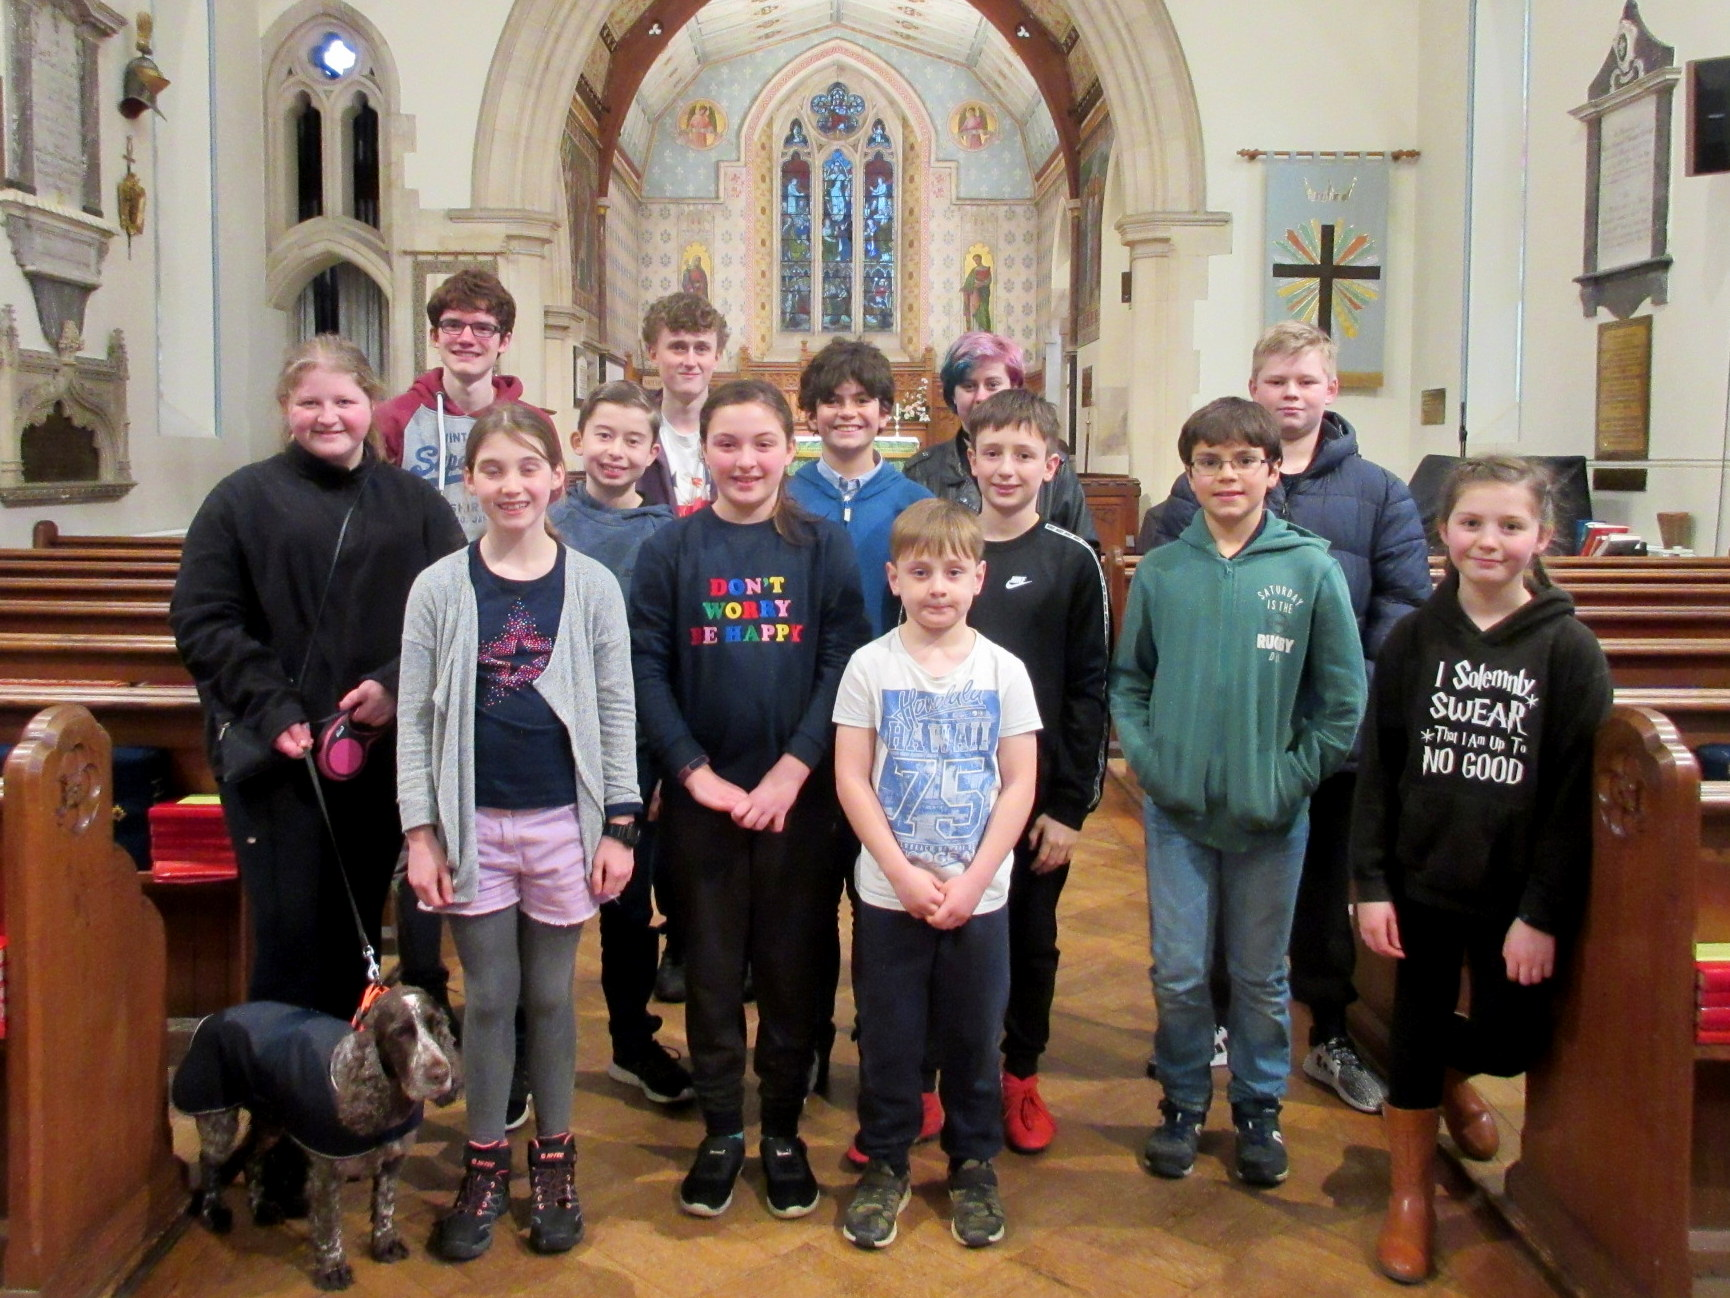 Youth ringers during the 2020 February half-term outing.